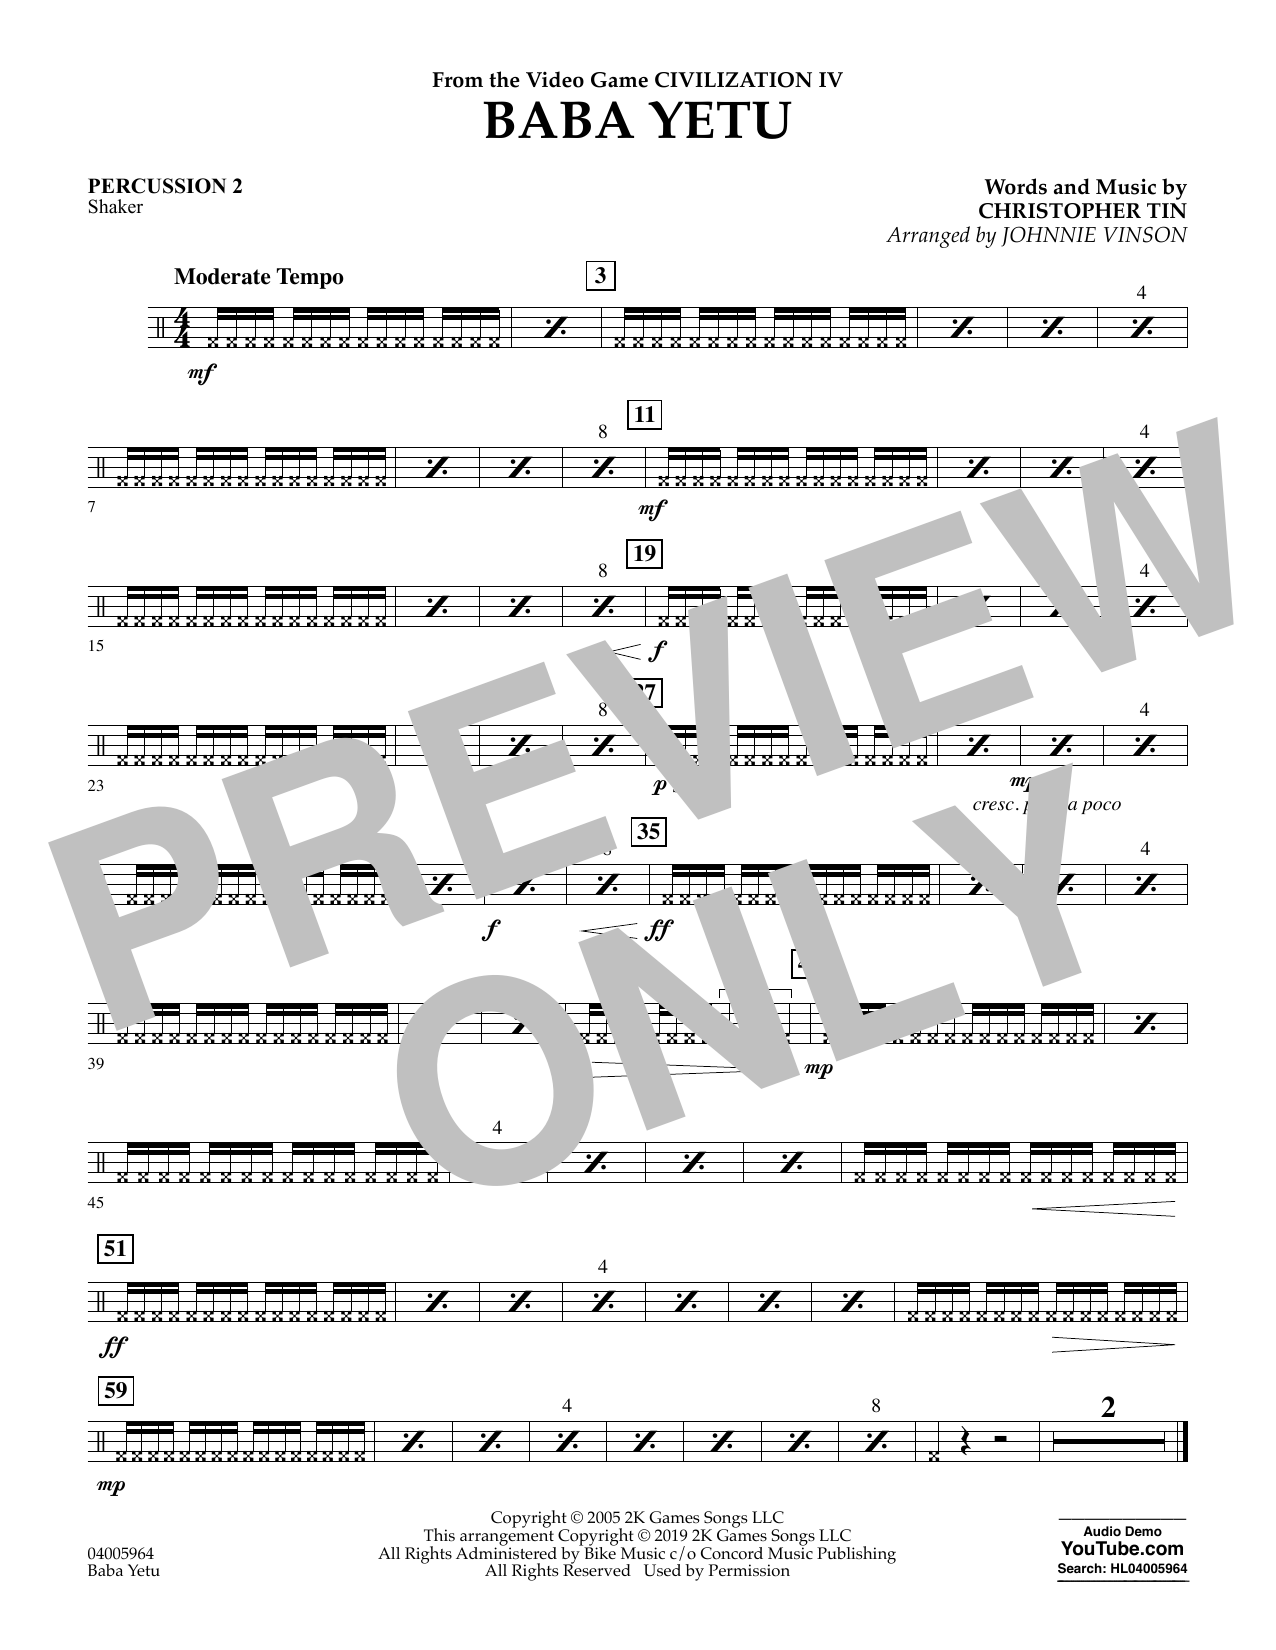 Christopher Tin Baba Yetu (from Civilization IV) (arr. Johnnie Vinson) - Percussion 2 sheet music notes and chords. Download Printable PDF.